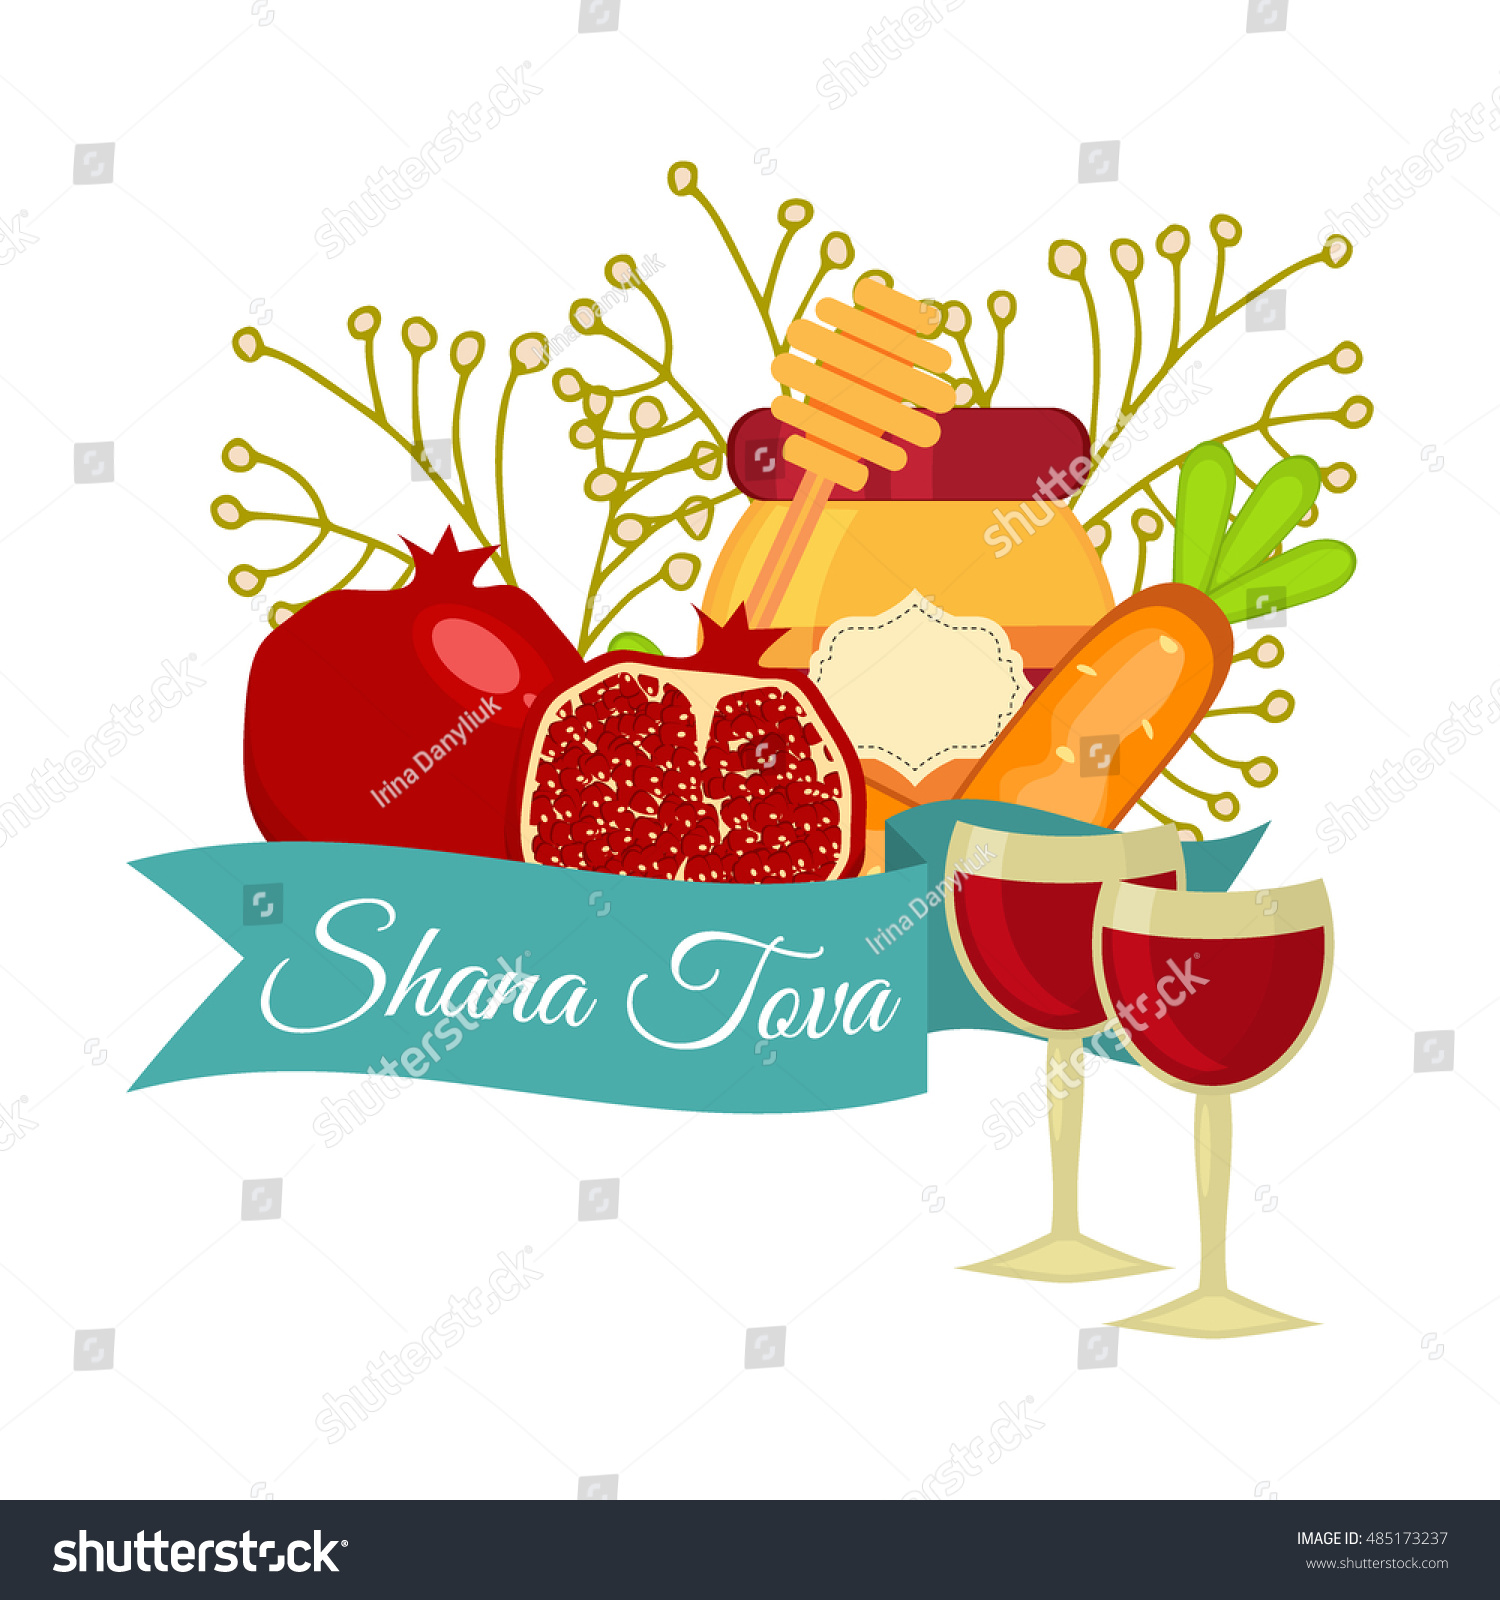 Rosh hashanah jewish new year greeting stock vector 485173237 rosh hashanah jewish new year greeting card set design shana tova apple honey and pomegranate kristyandbryce Choice Image